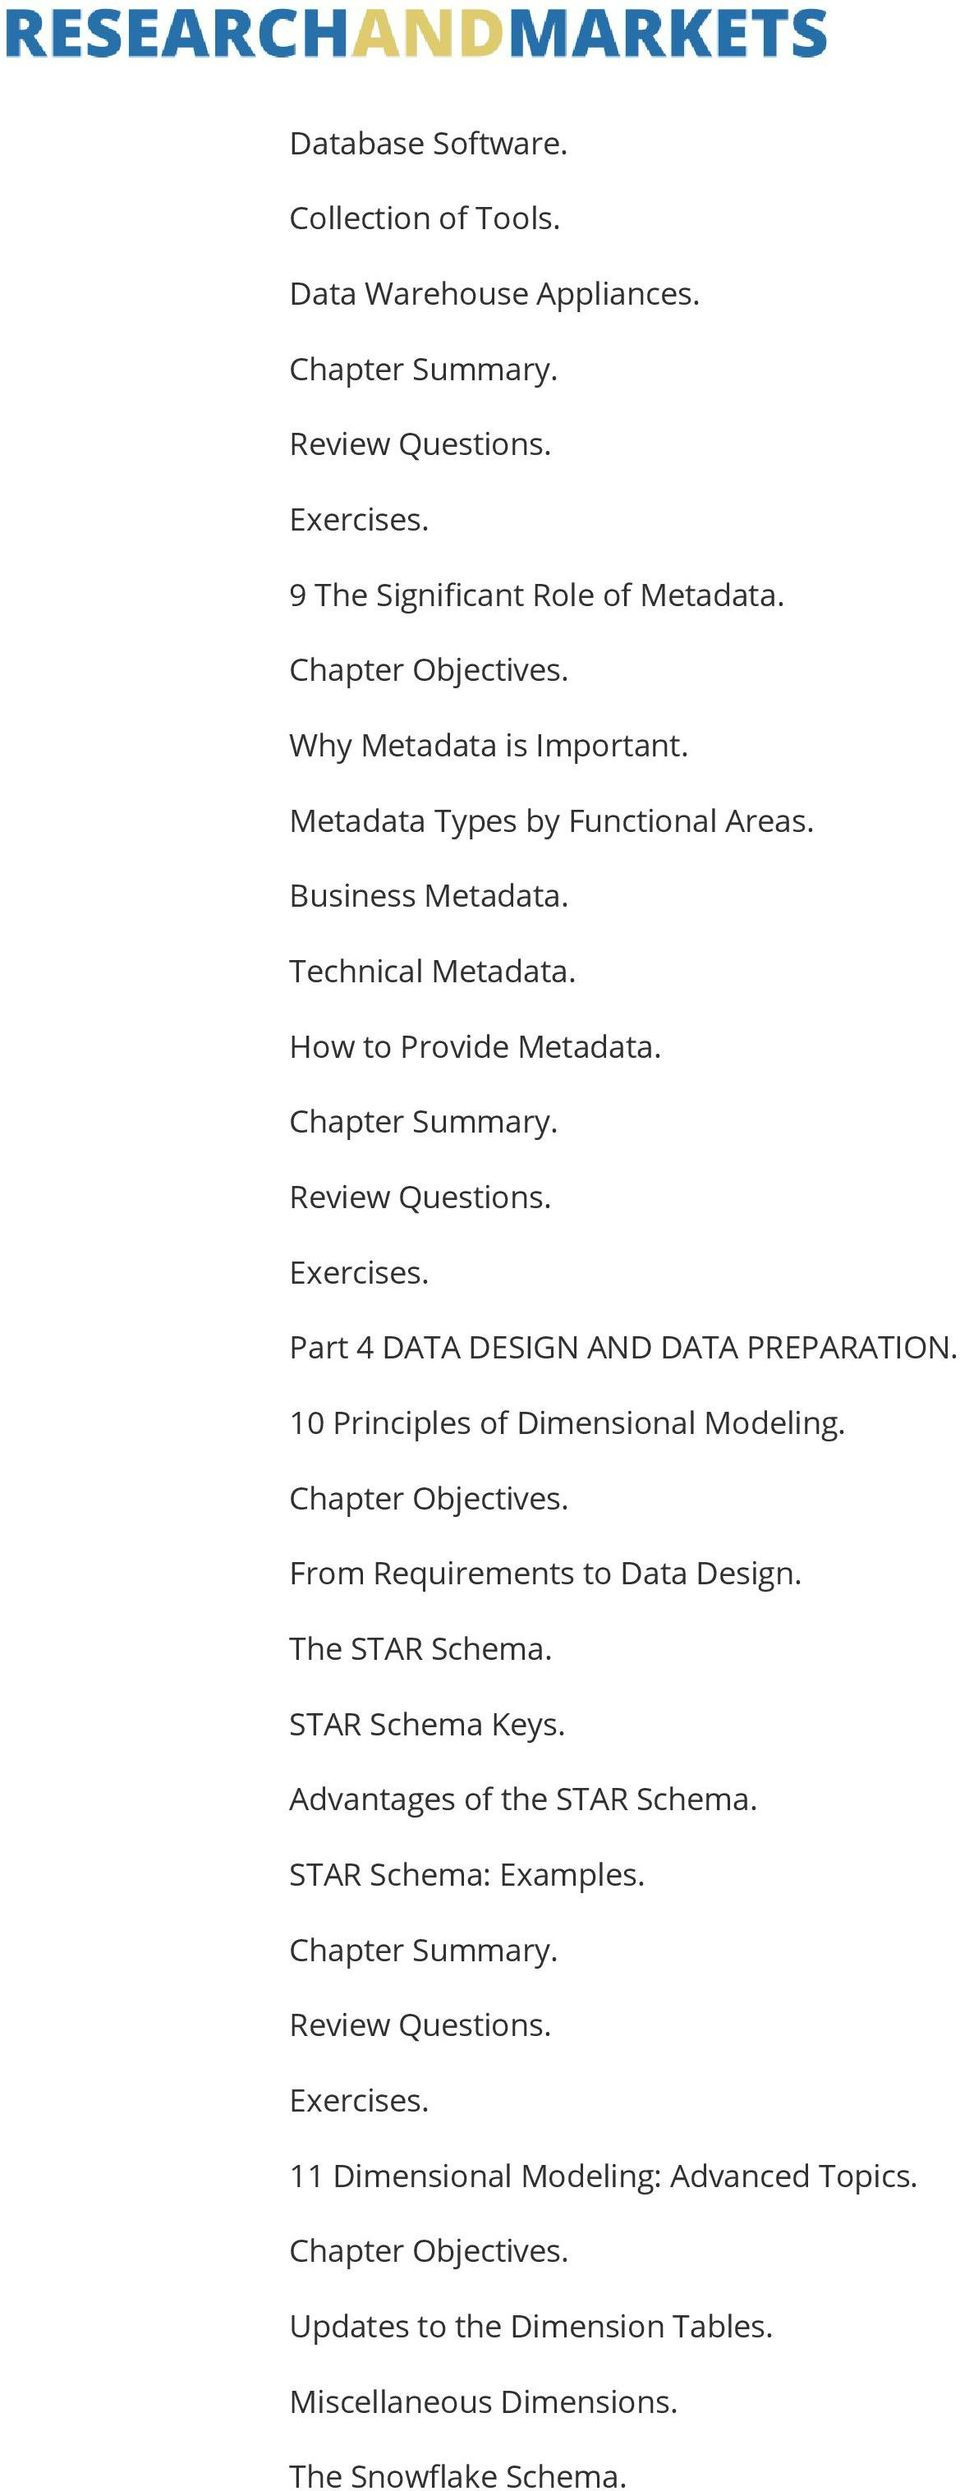 Part 4 DATA DESIGN AND DATA PREPARATION. 10 Principles of Dimensional Modeling. From Requirements to Data Design. The STAR Schema.